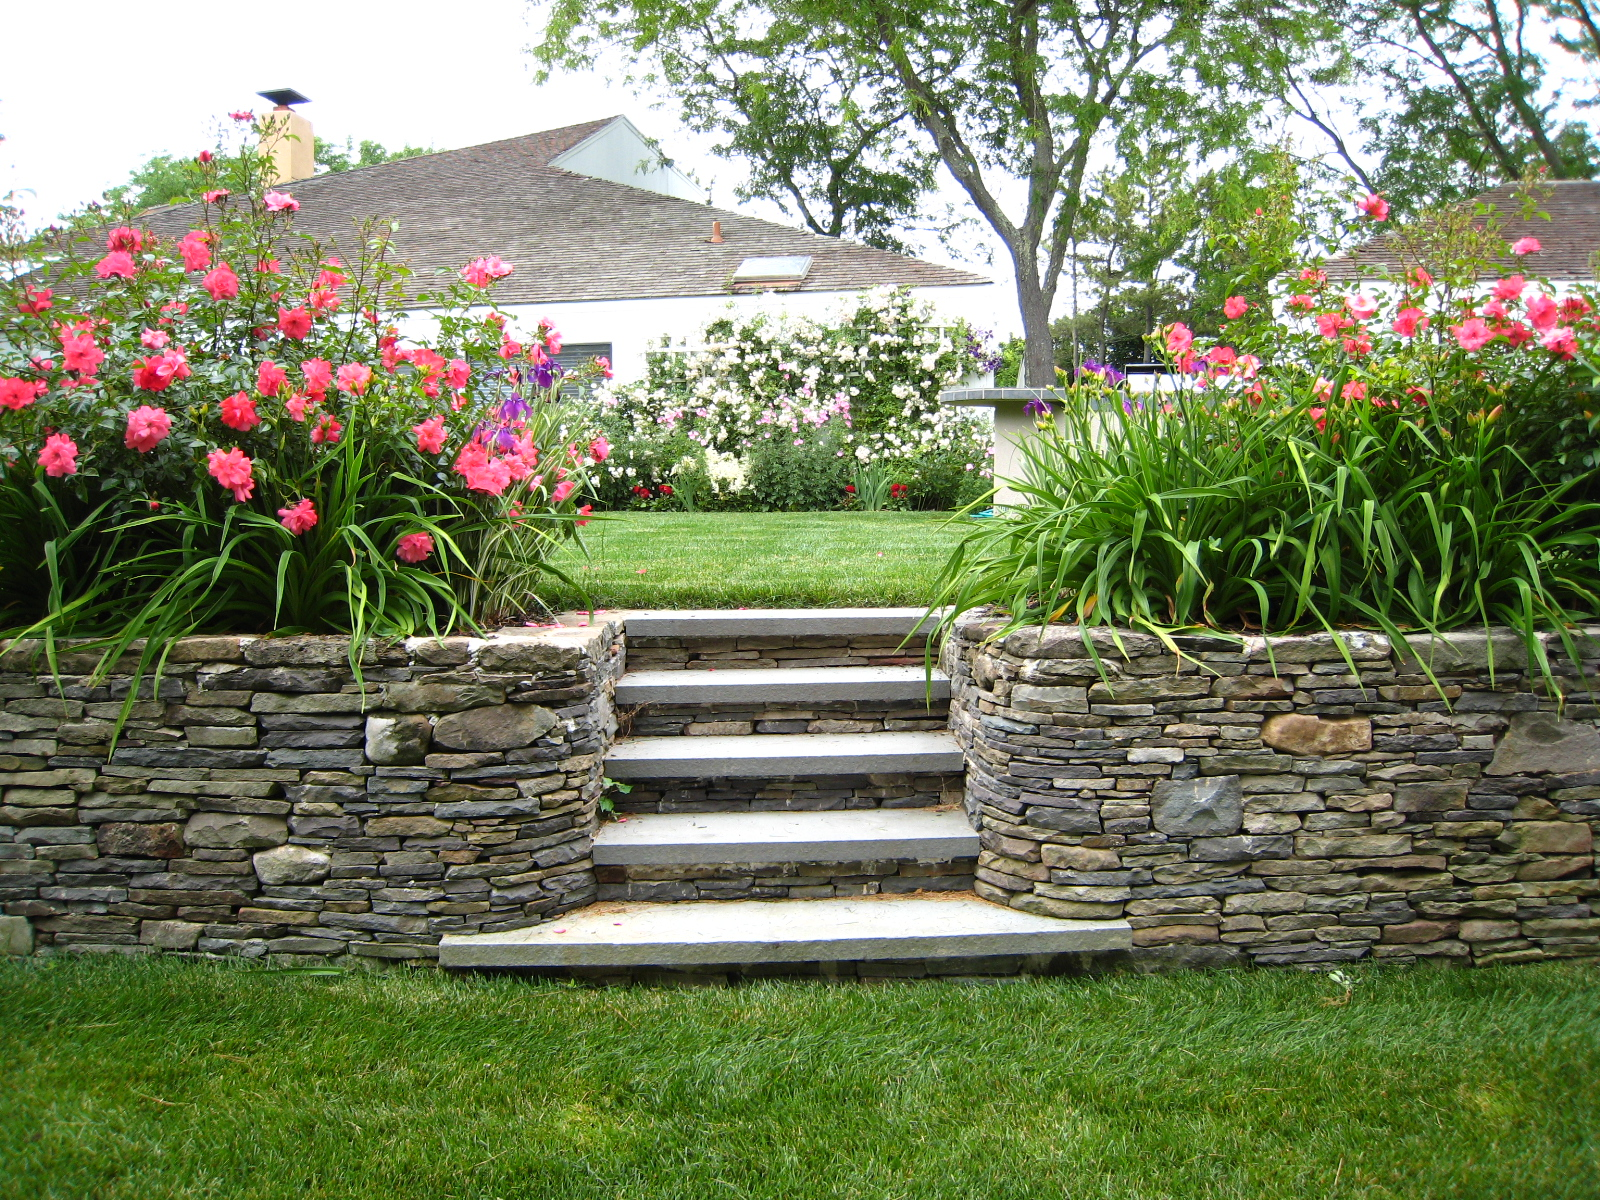 Divine Curbside Landscaping Ideas Featuring Rock Crawling And Garden ...